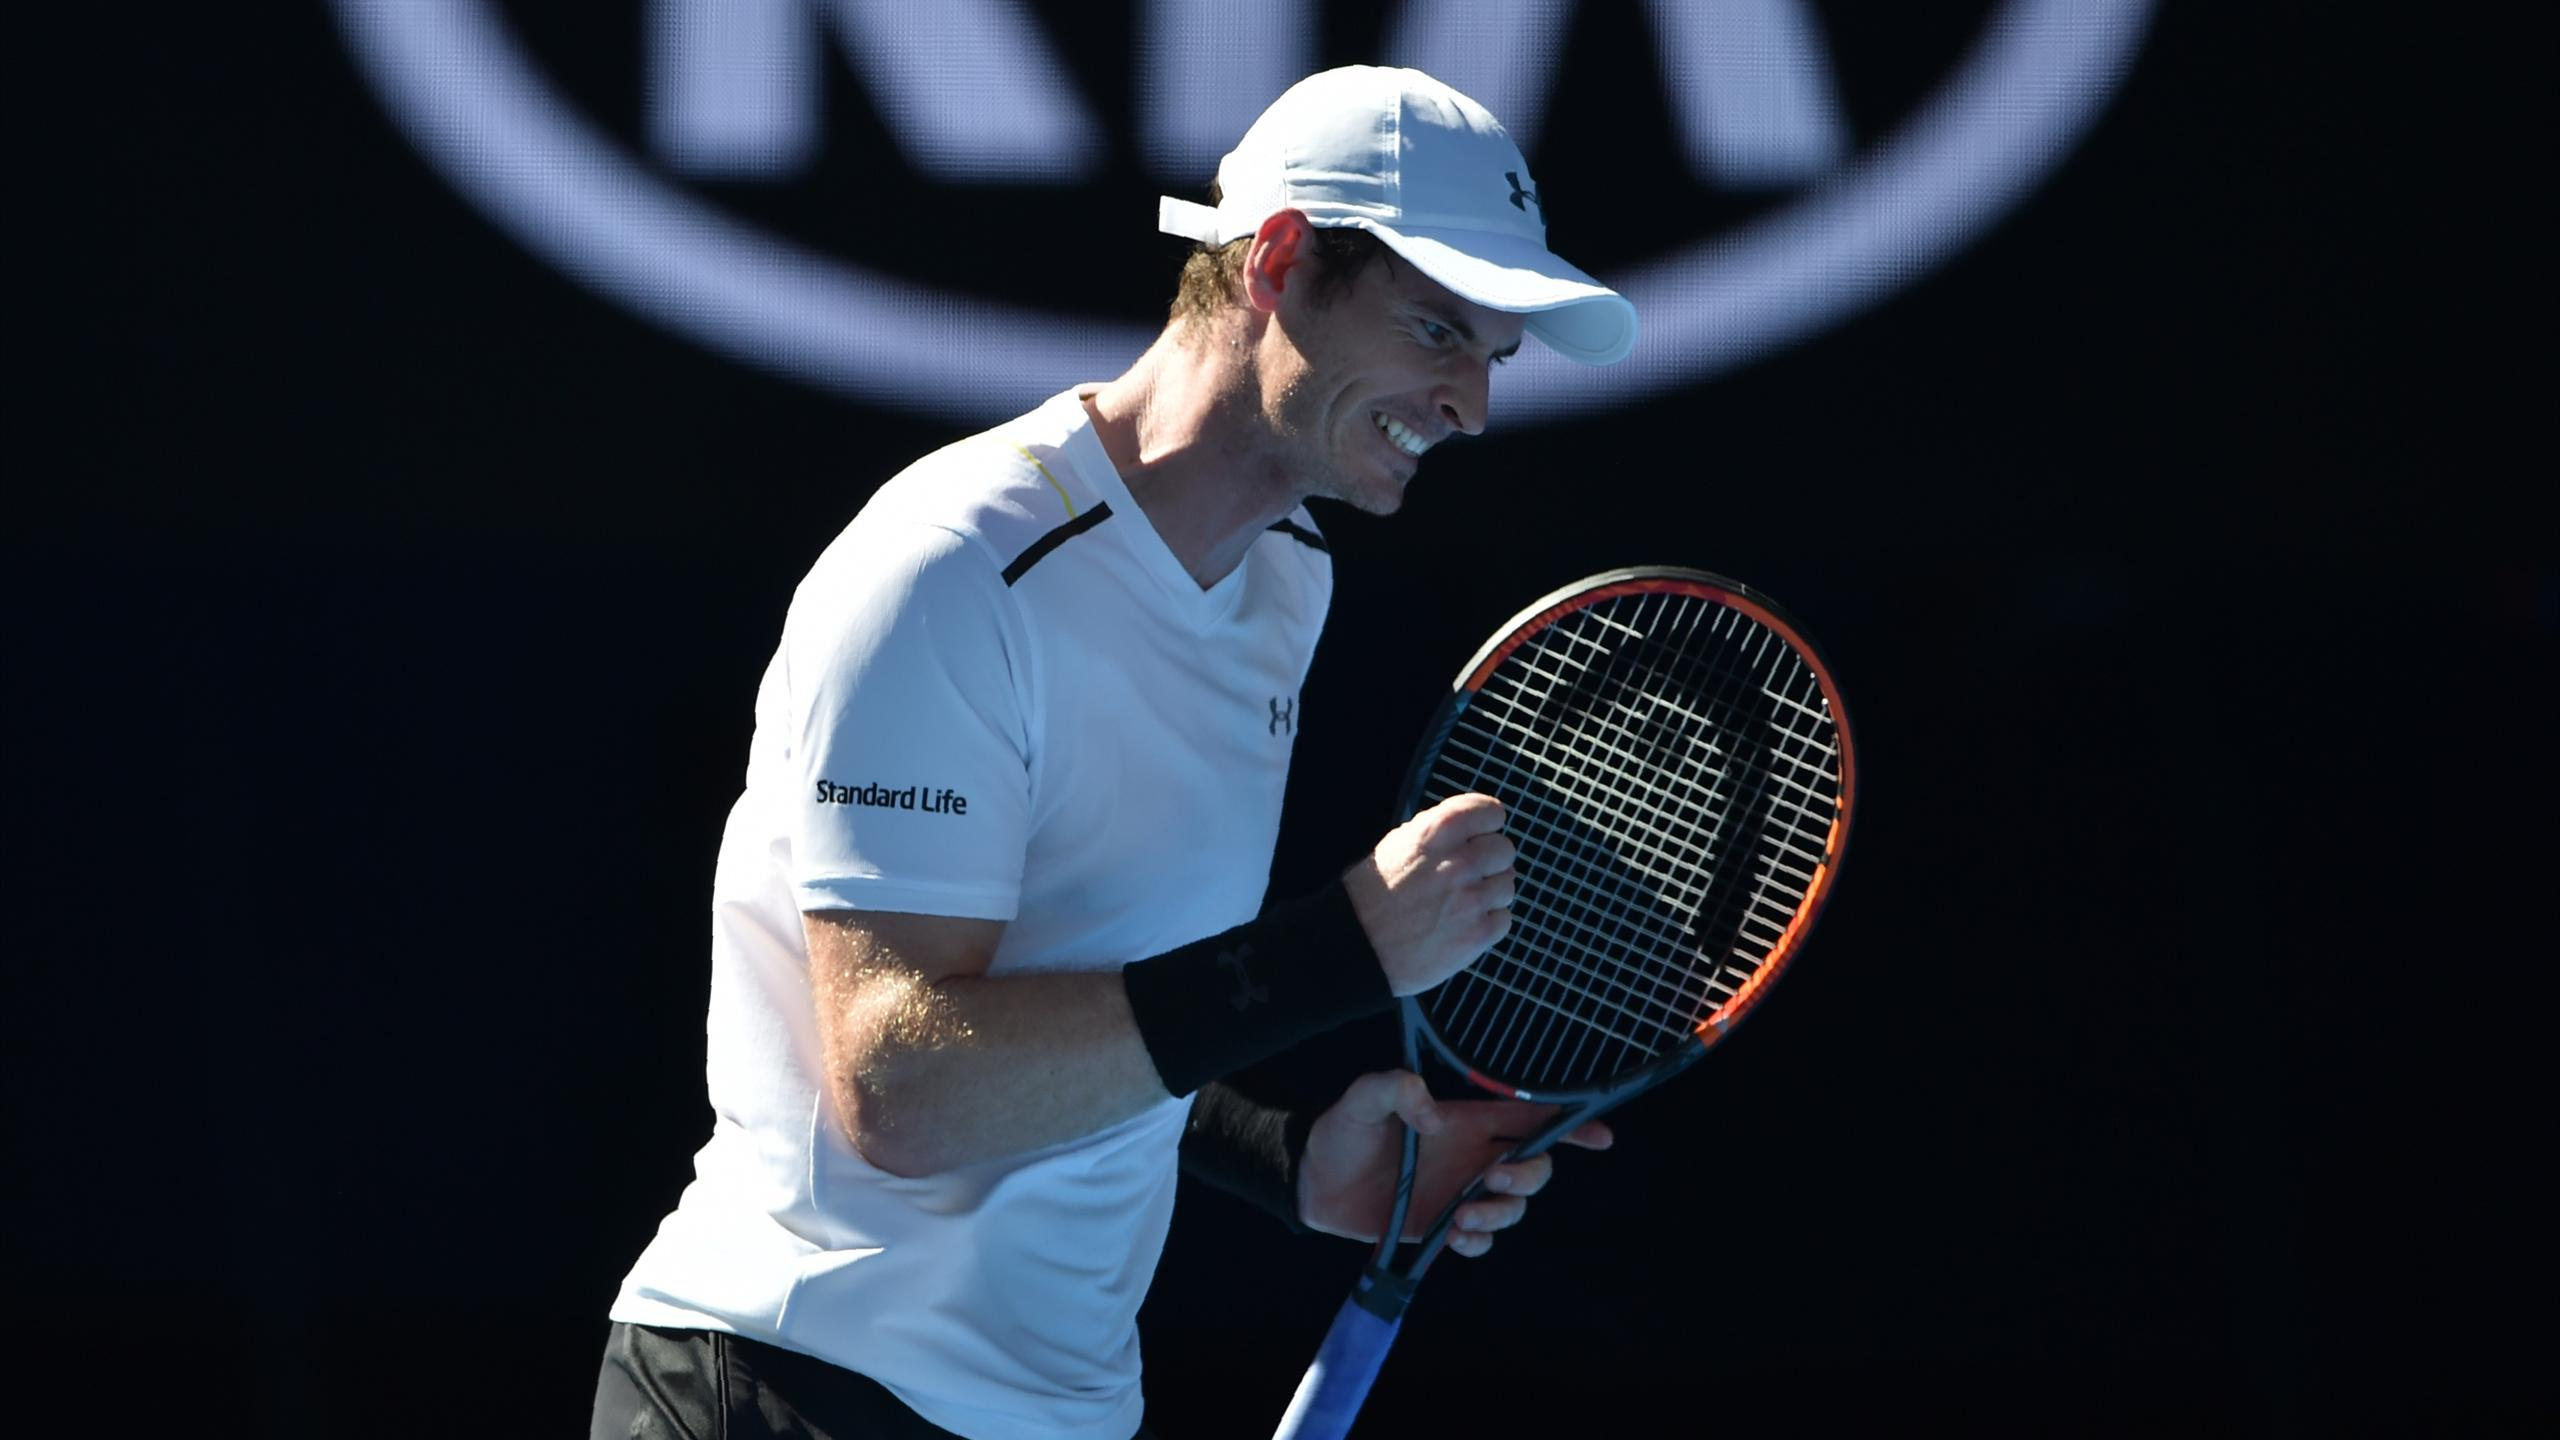 Andy Murray celebrates victory at the Australian Open